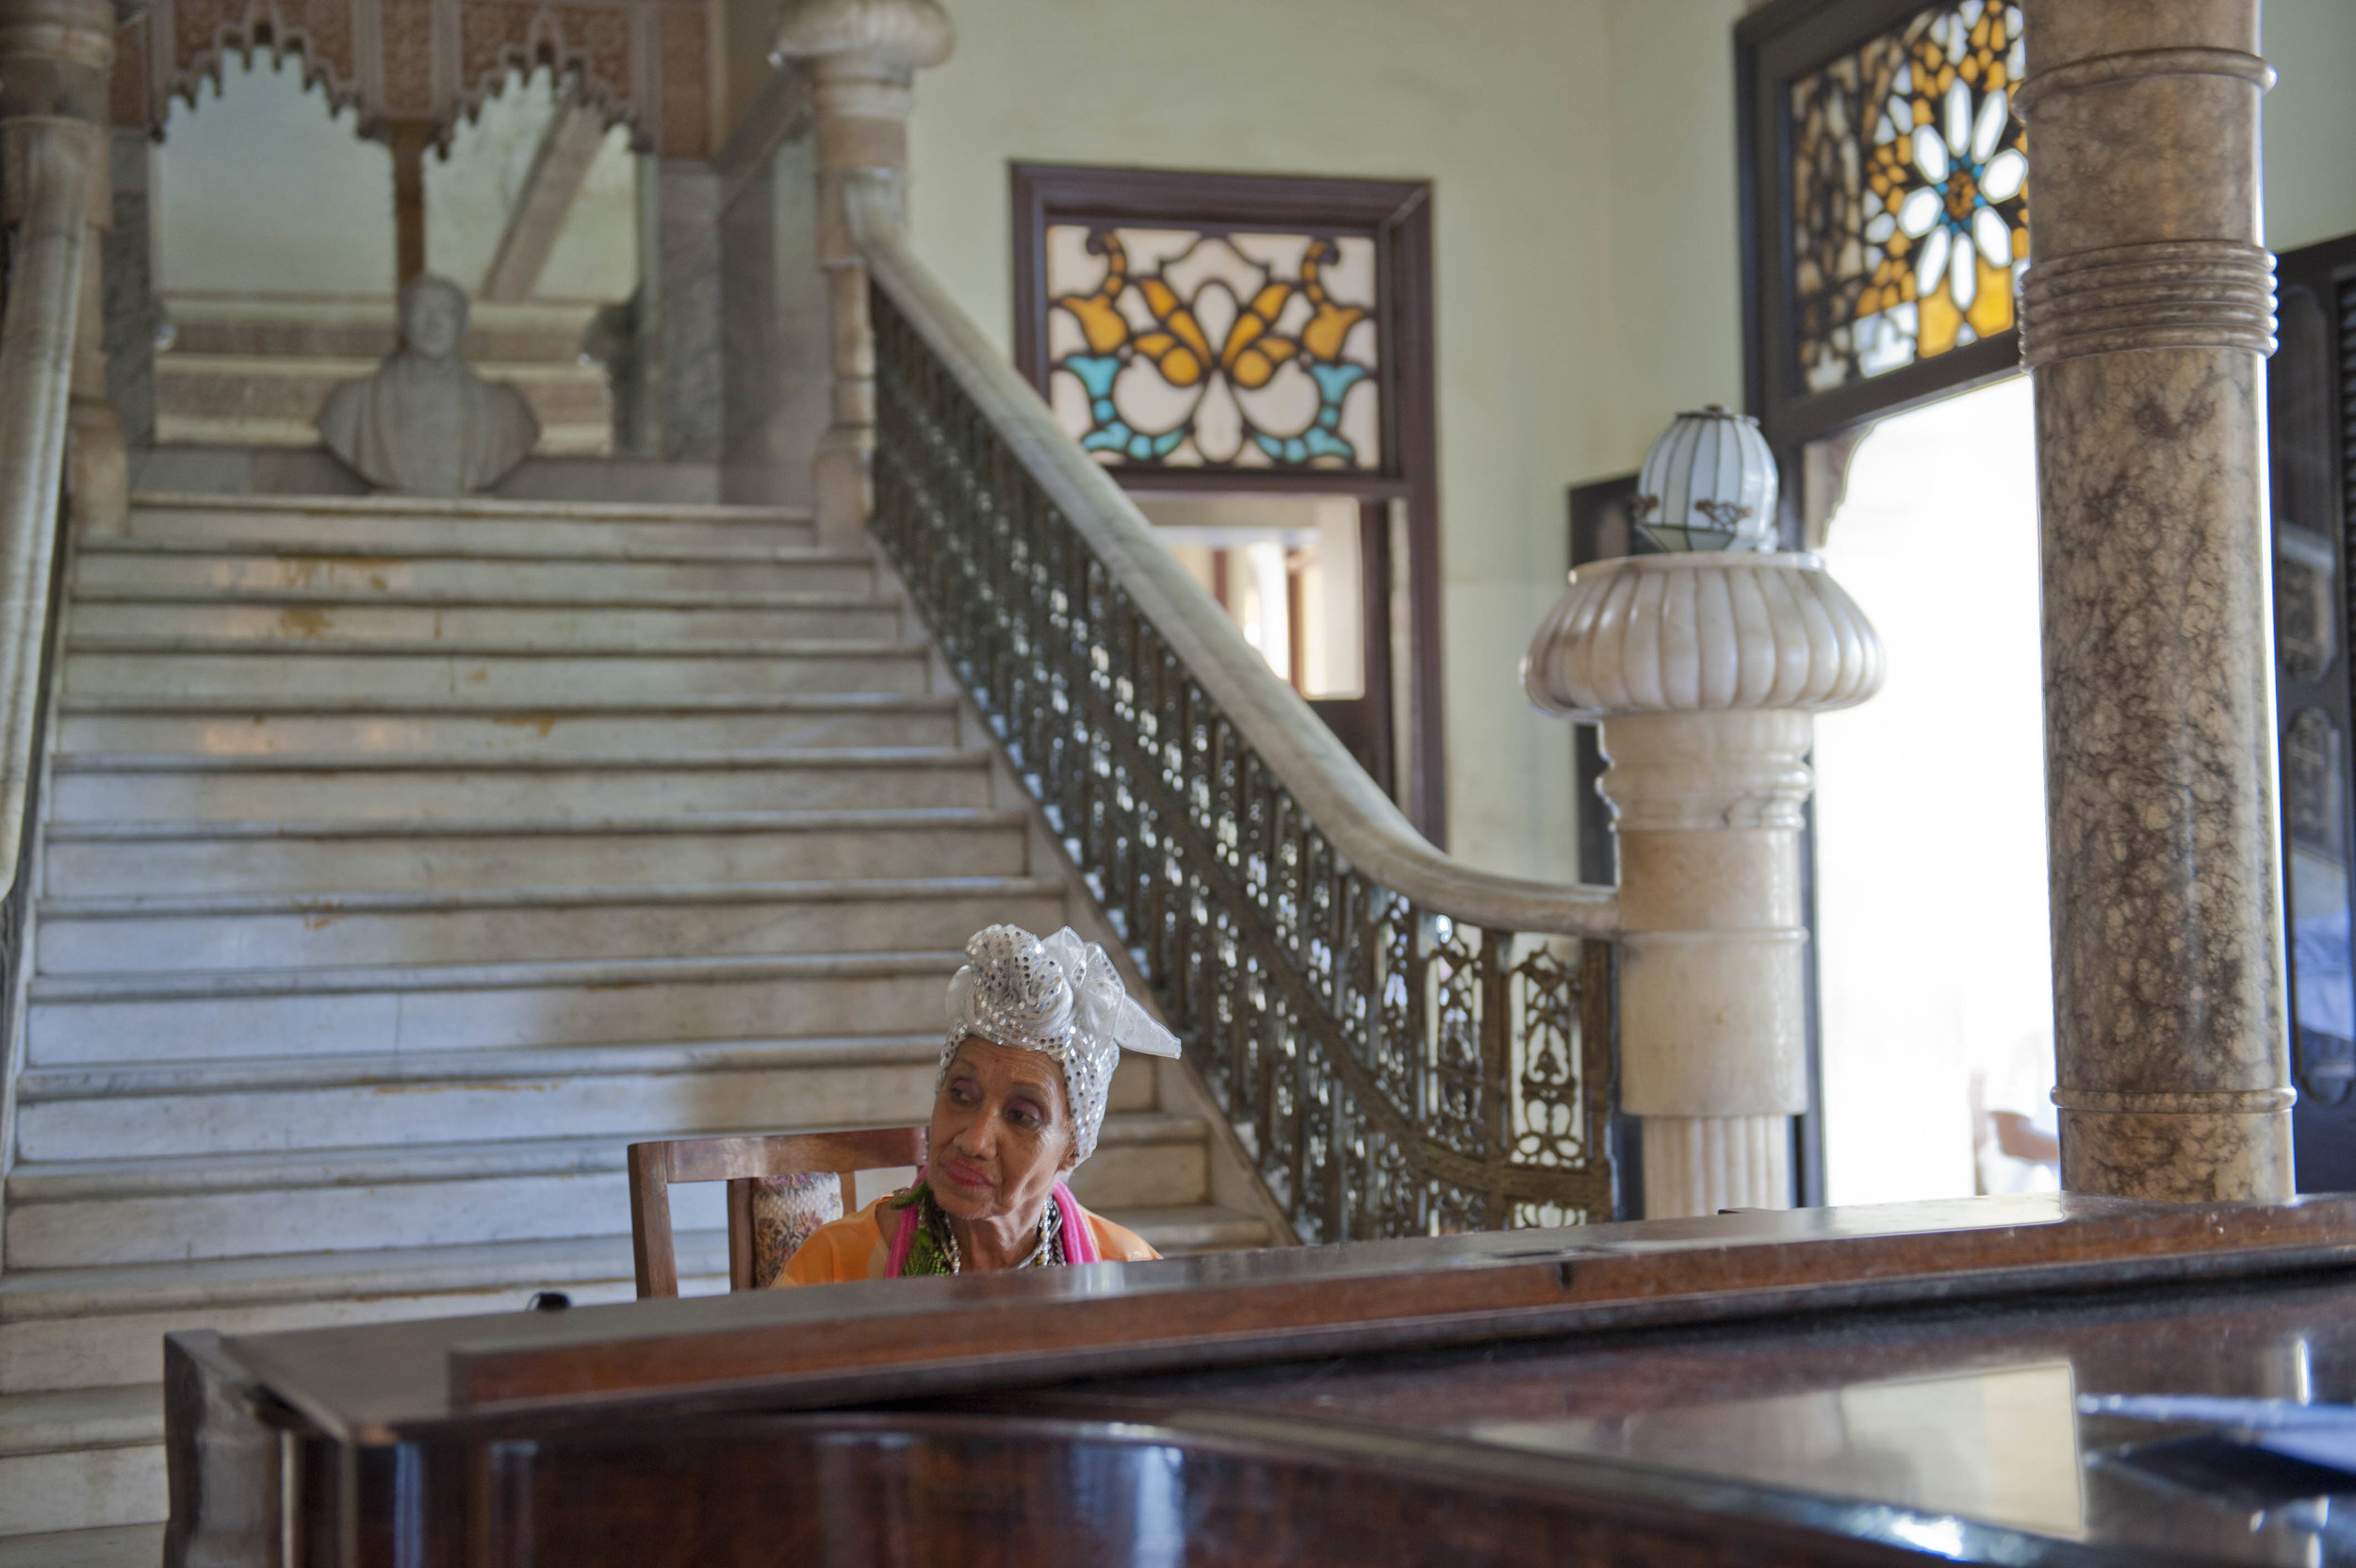 Piano player, Palacio de Valle, Cienfuegos, Cuba